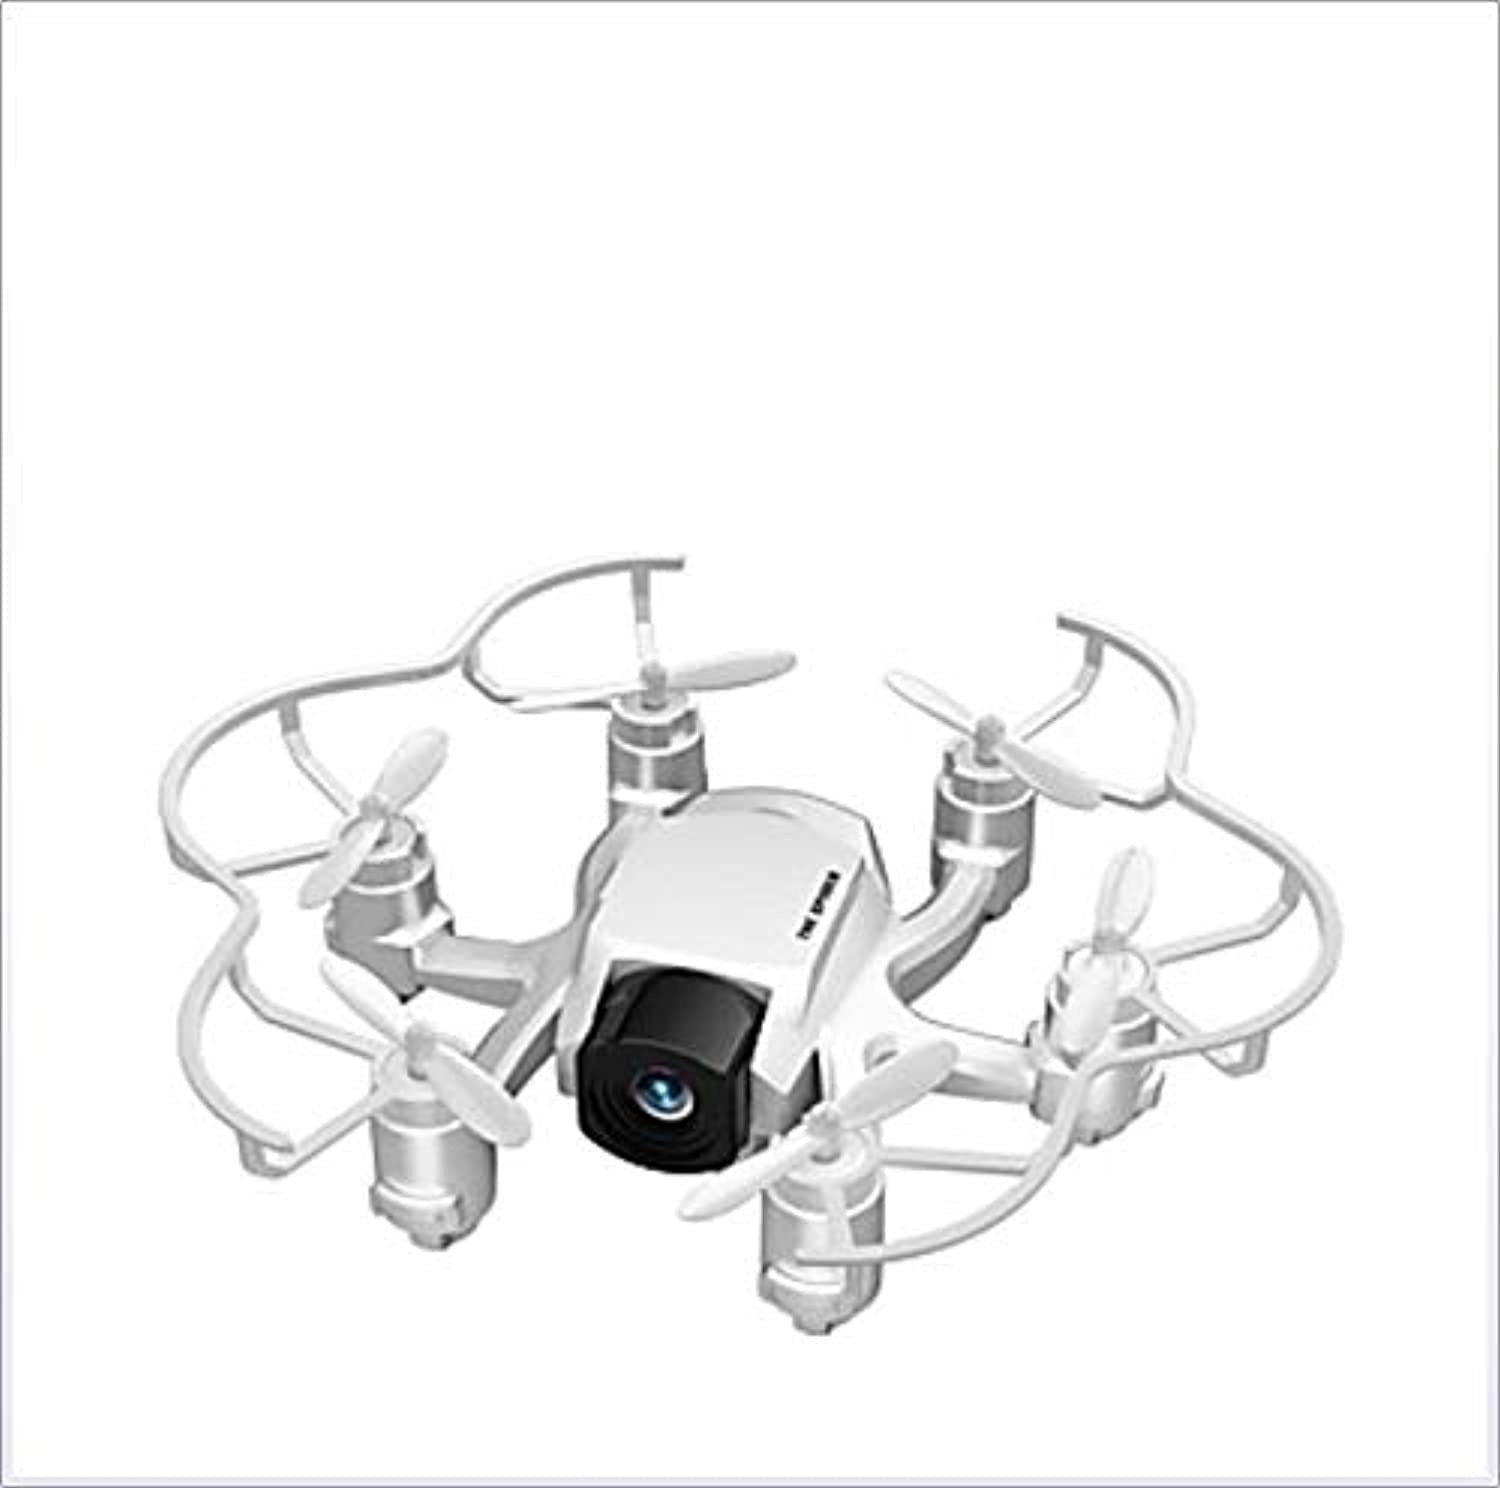 YAMEIJIA RC Drone 4 Channel 6 Axis 2.4G With HD Camera 2.0MP 1280P720P RC Quadcopter LED Lights One Key To AutoReturn  ,White